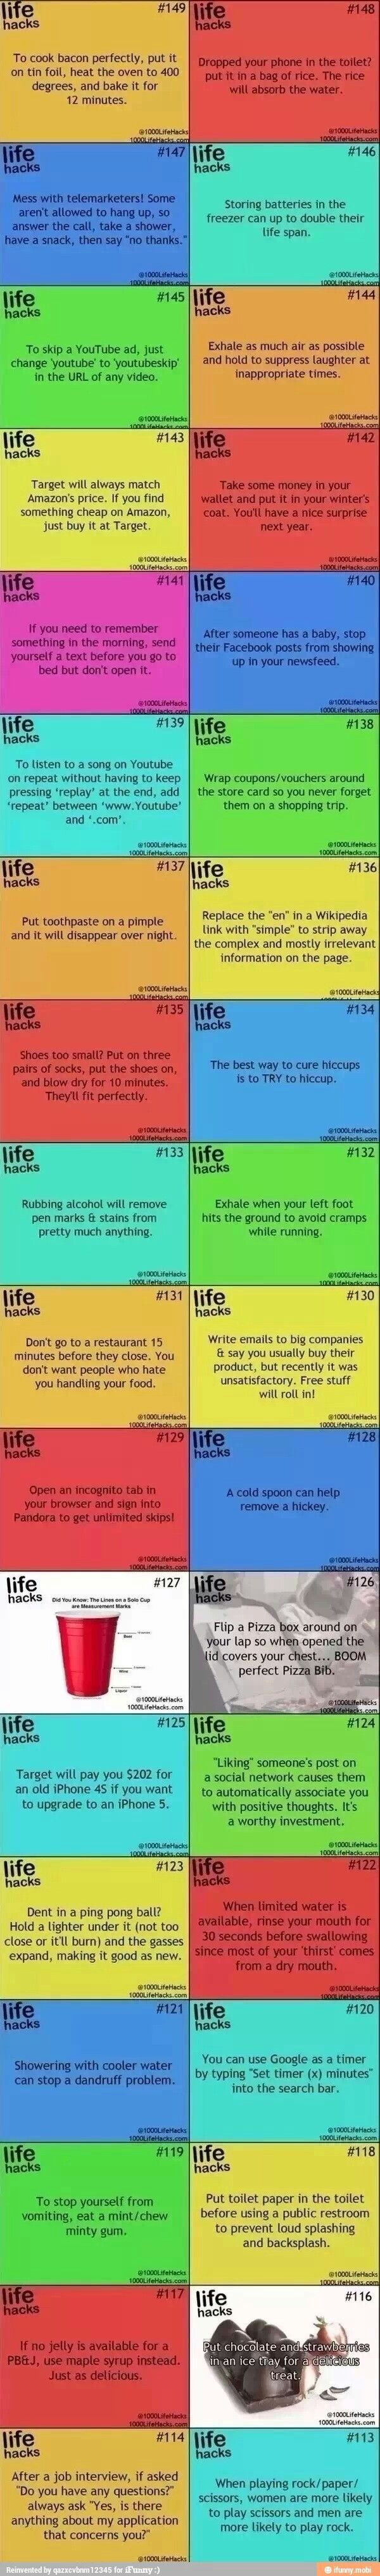 Useful life hacks                                                                                                                                                                                 More